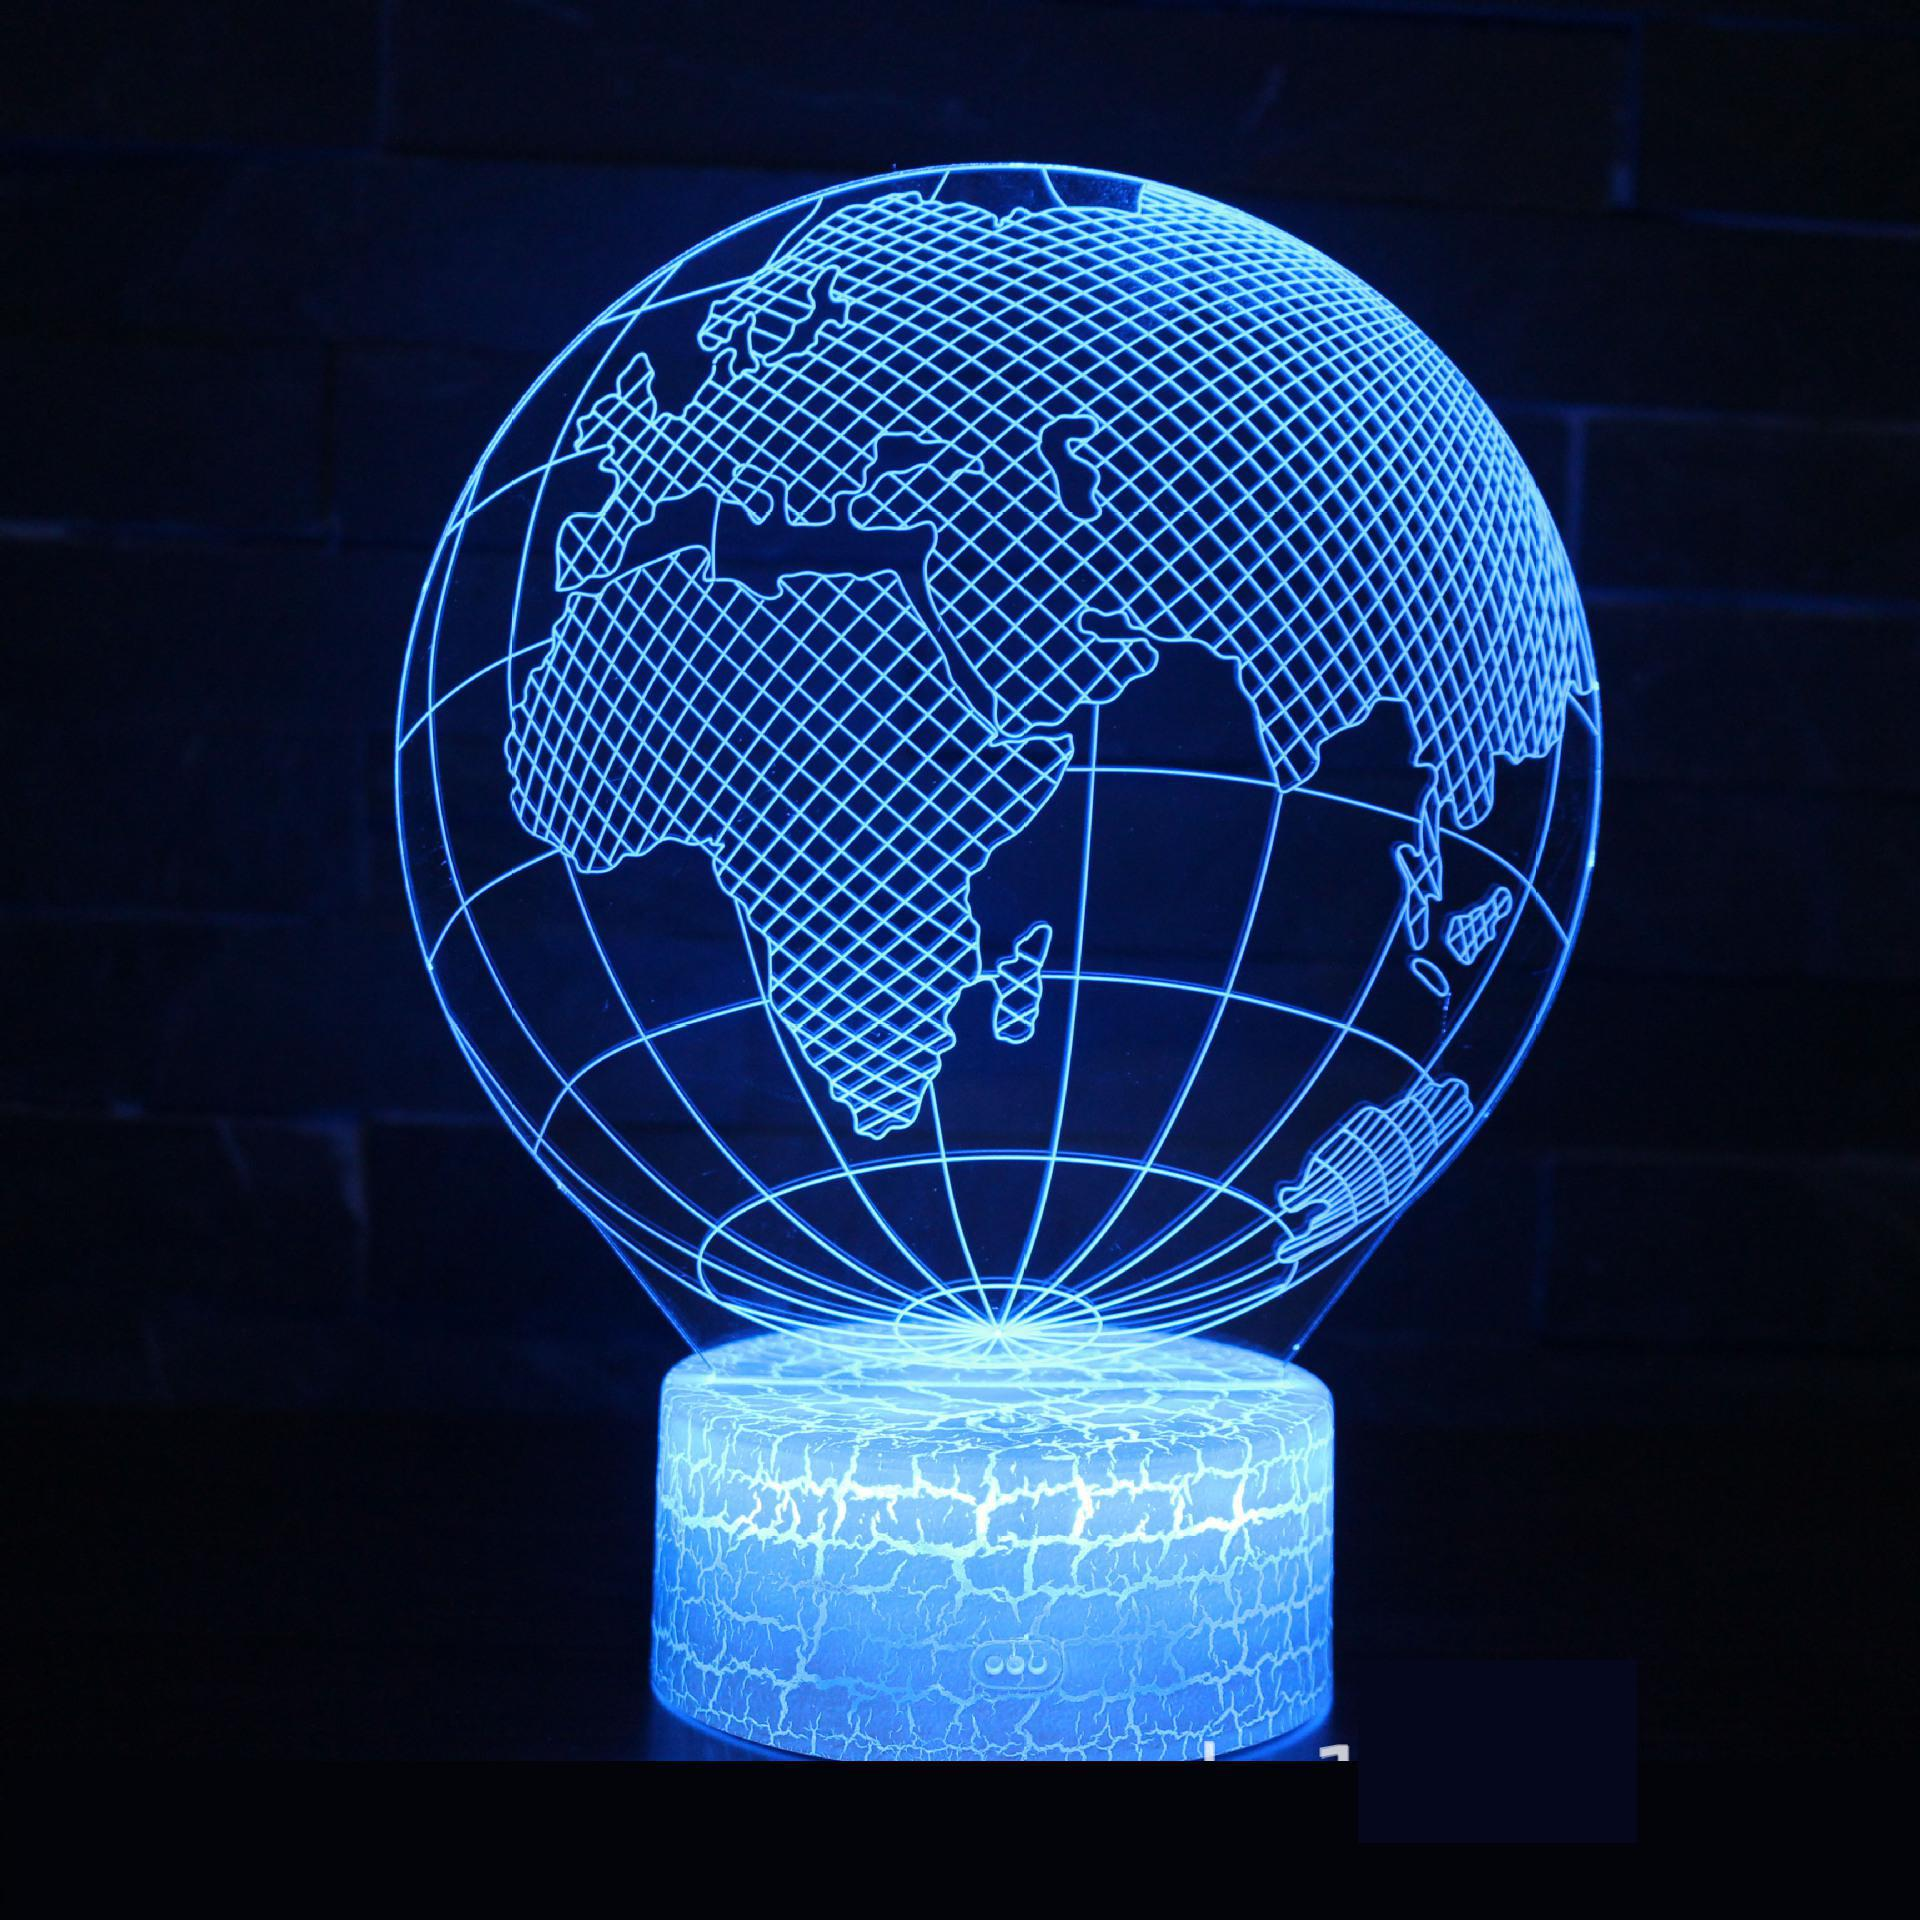 Globe Series 3d Lamp Creative Gift Visual Three Dimensional Colorful Led Night Light Remote Touch switch White base 3d Light image